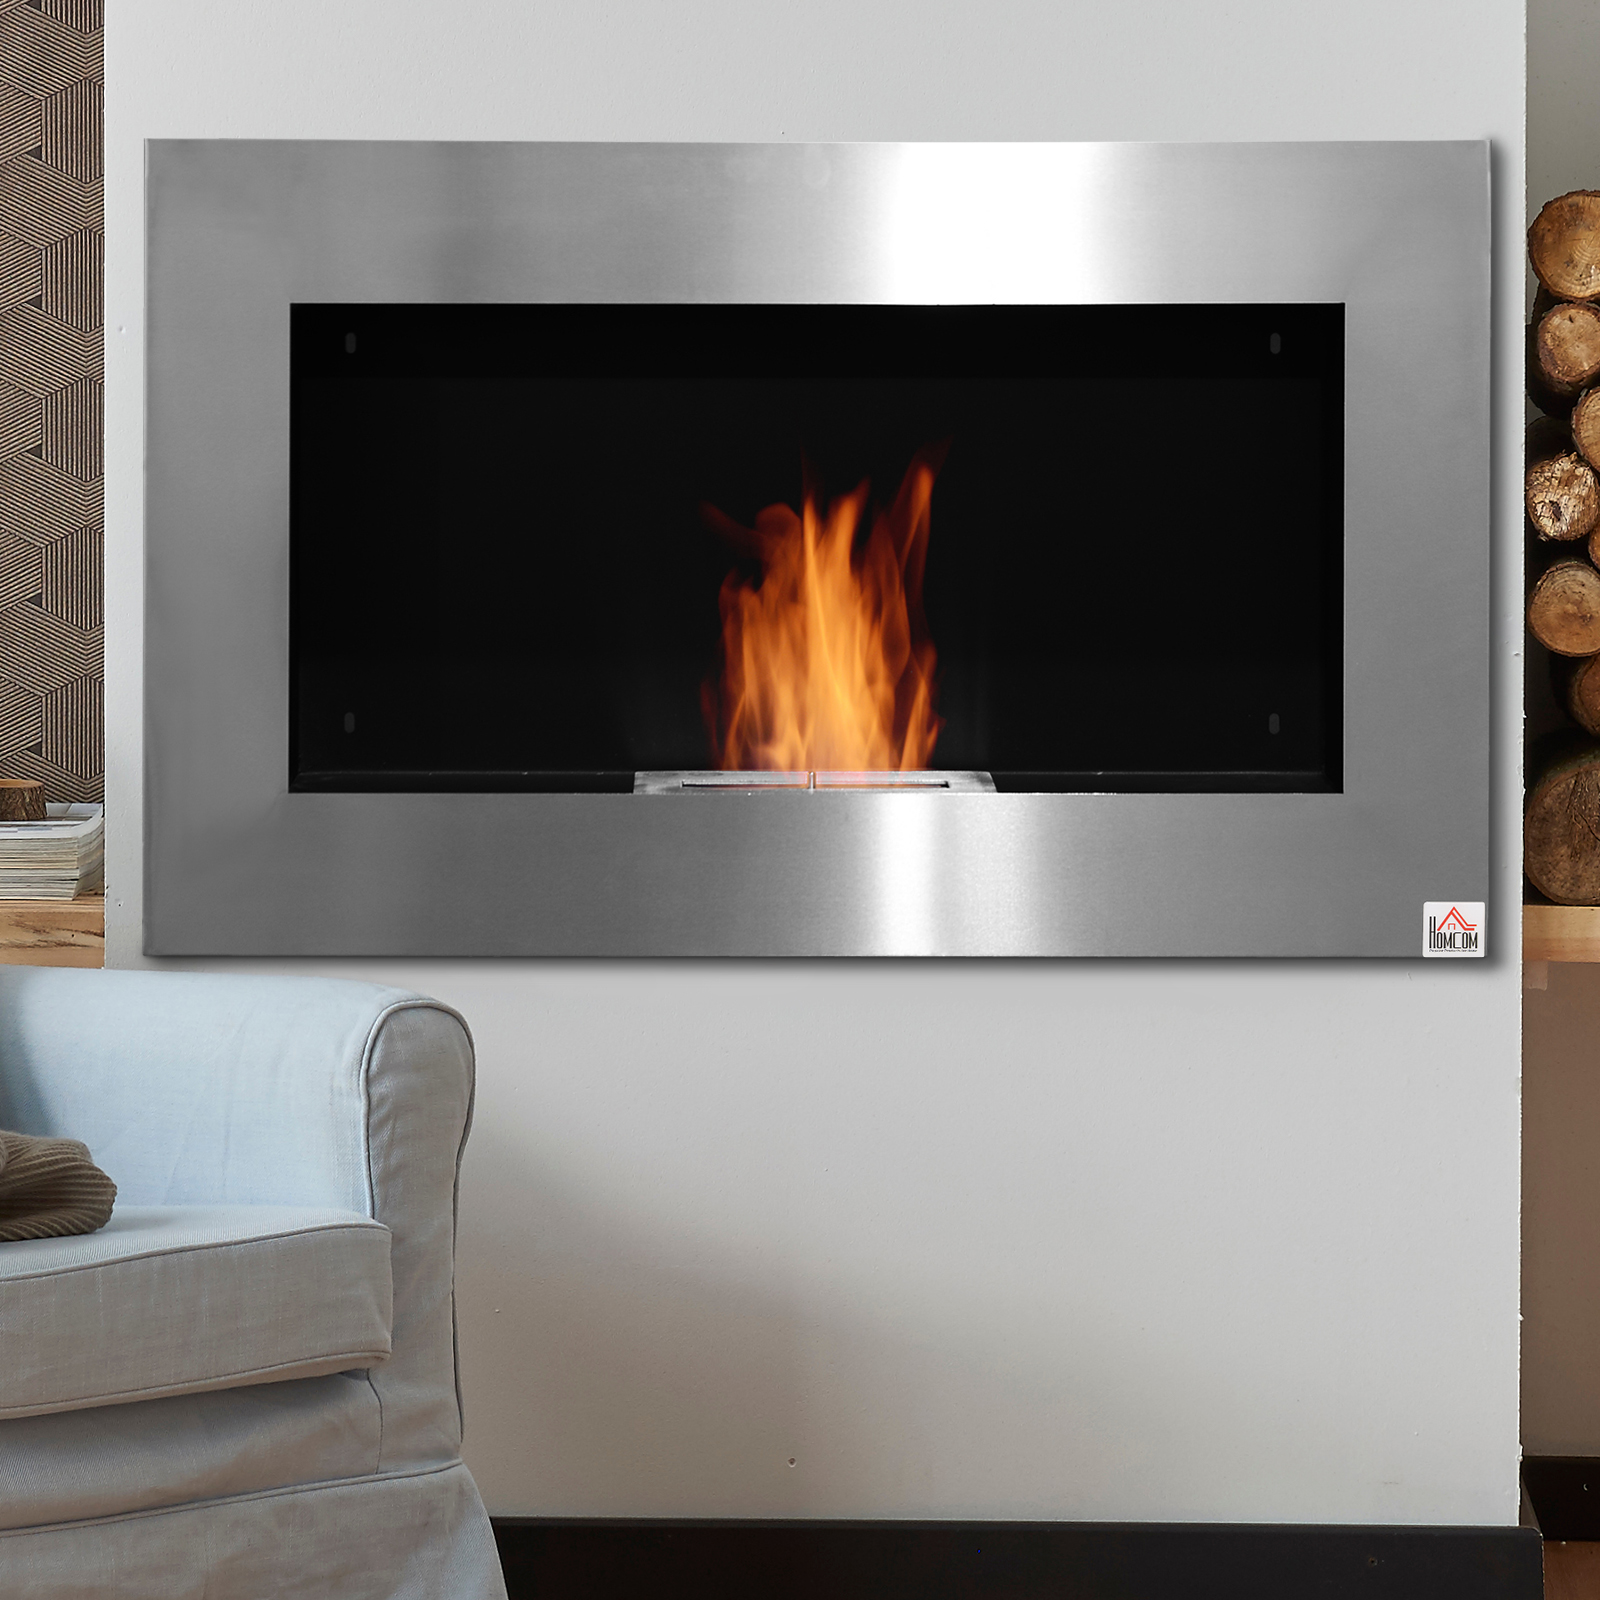 Details About 35 5 Modern Bio Ethanol Fireplace Insert Wall Mounted Inside Stainless Steel